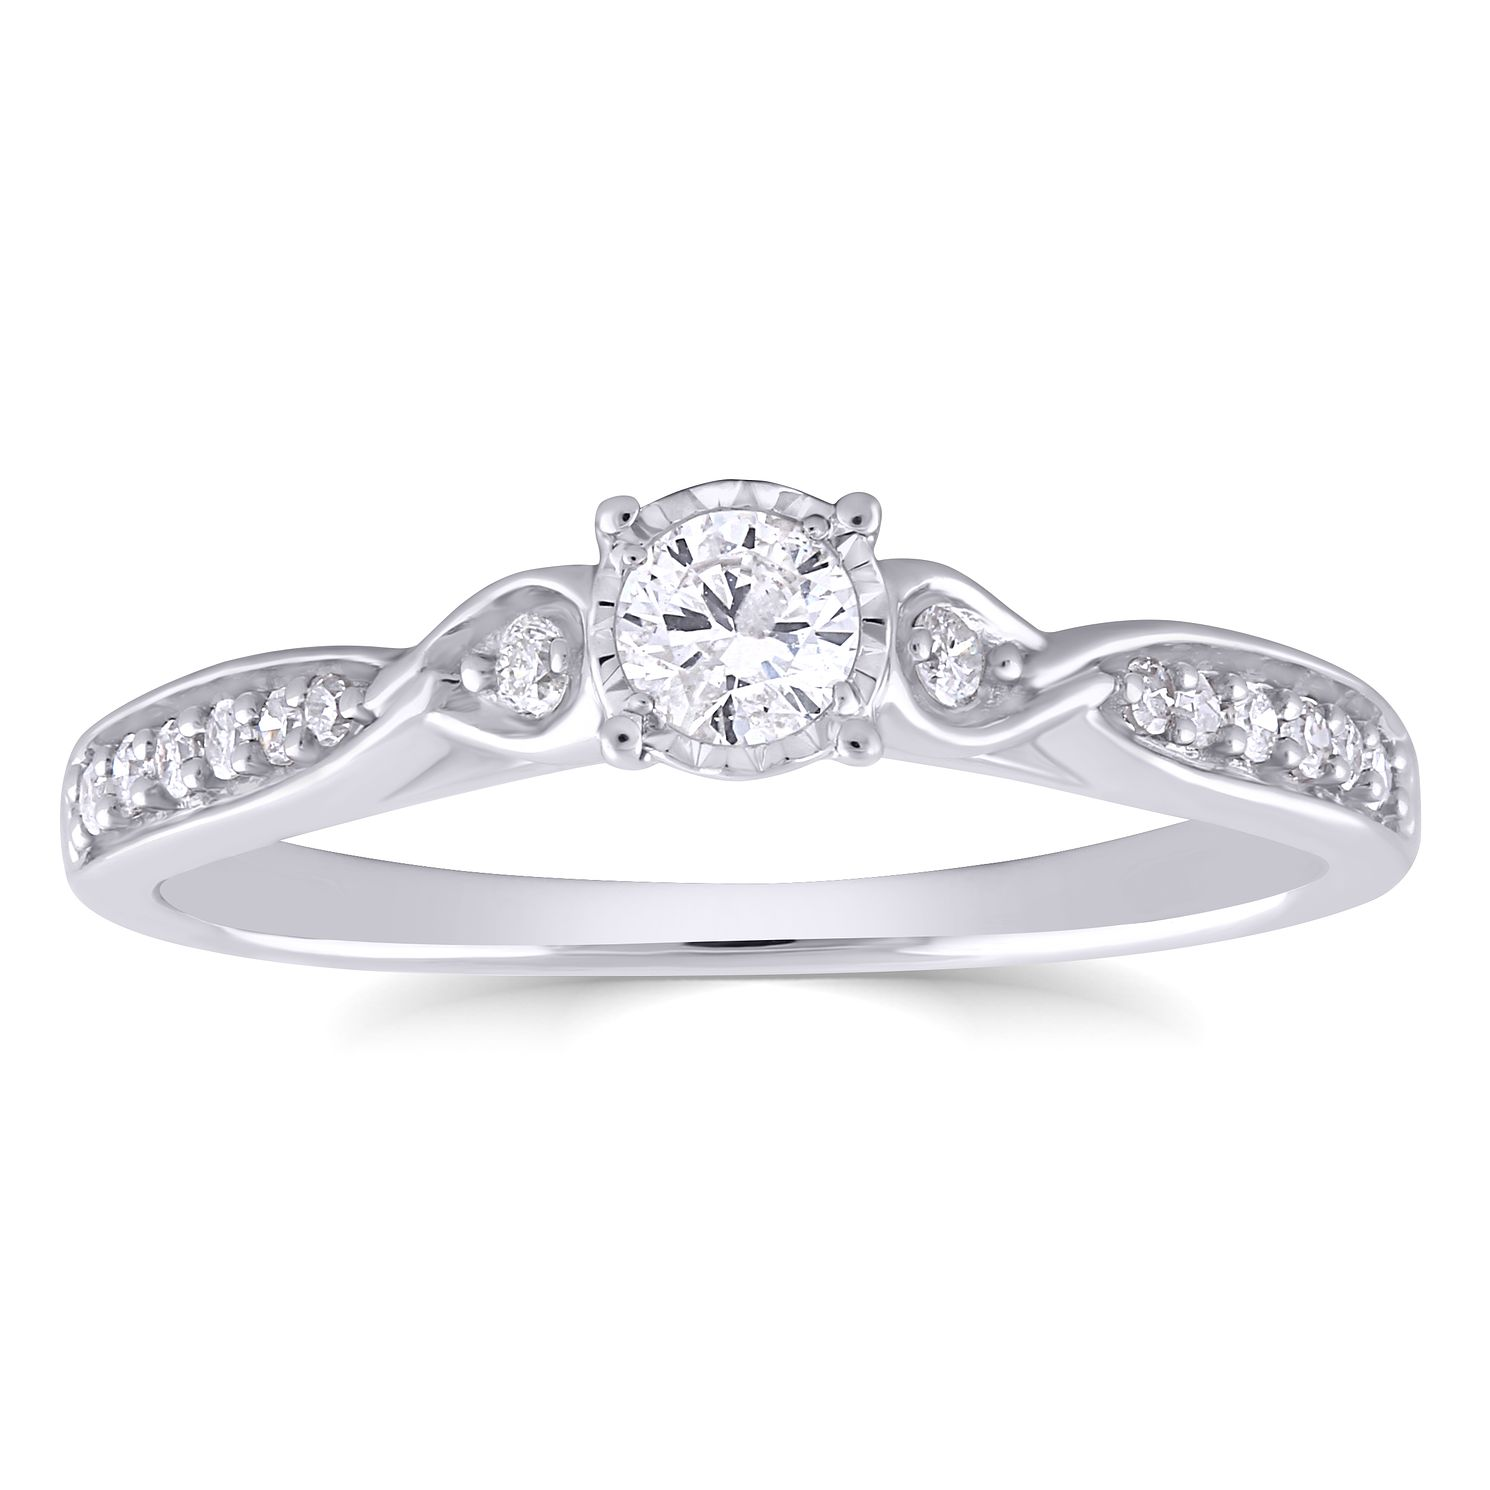 9ct White Gold 0.25ct Total Diamond Ring - Product number 4890094